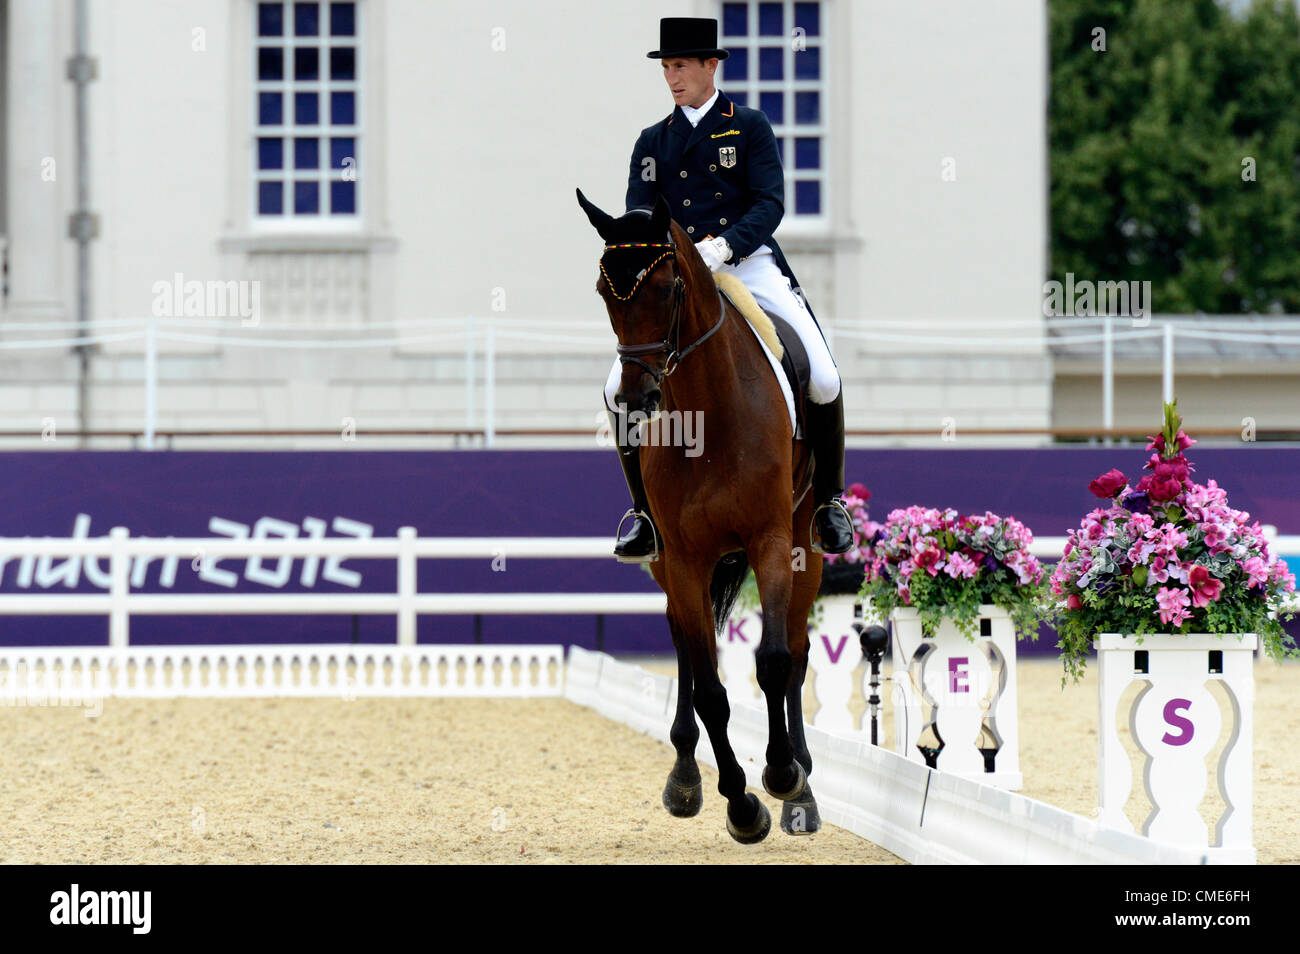 London, UK. 28th July, 2012. Greenwich Park. Olympics Equestrian Dirk Schrade GER riding King Artus Day 1 of Dressage Stock Photo